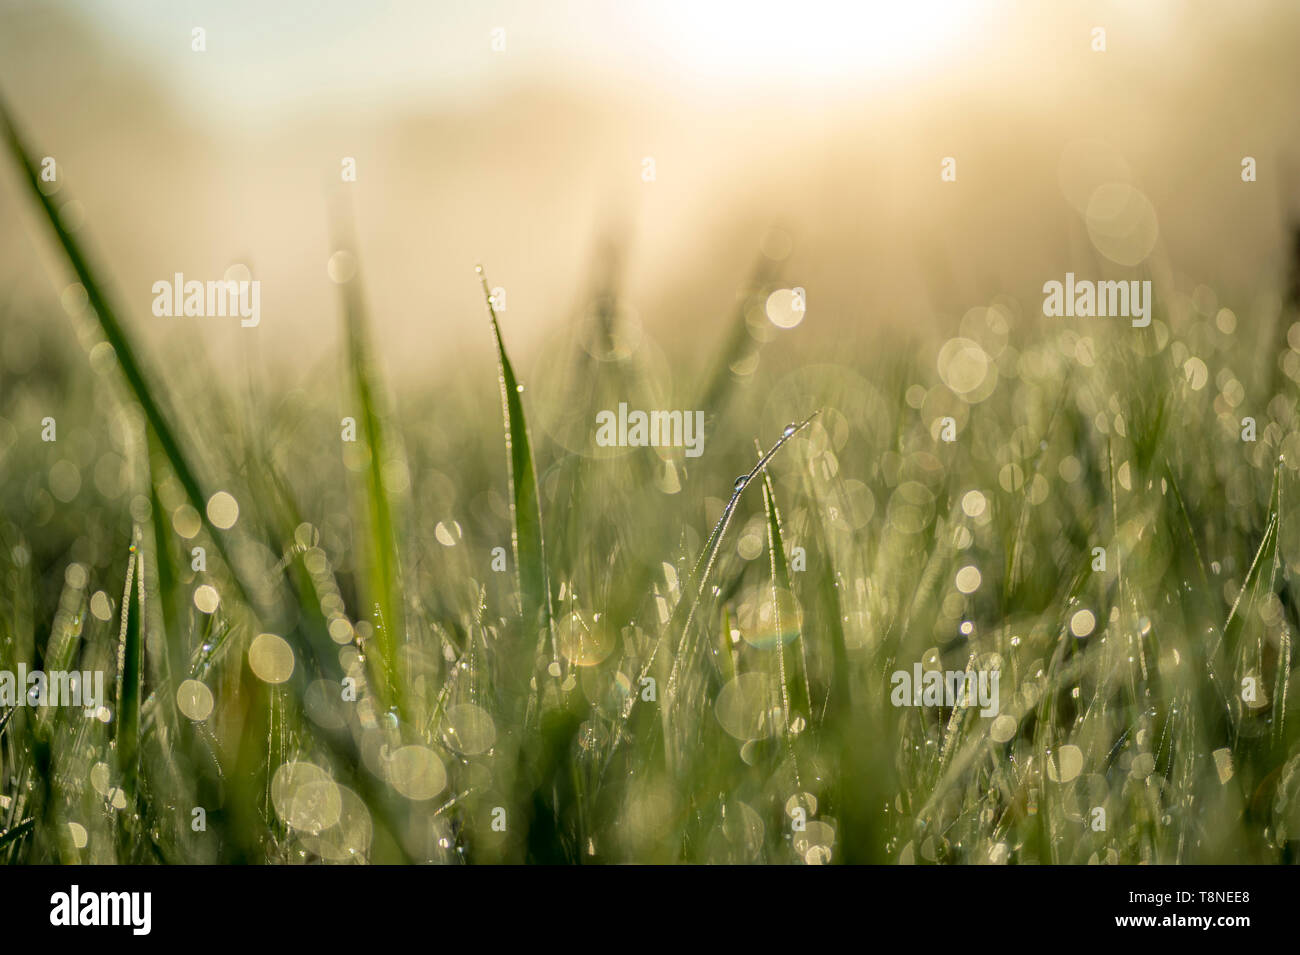 Green blade of grass close-up with dew drops. - Stock Image